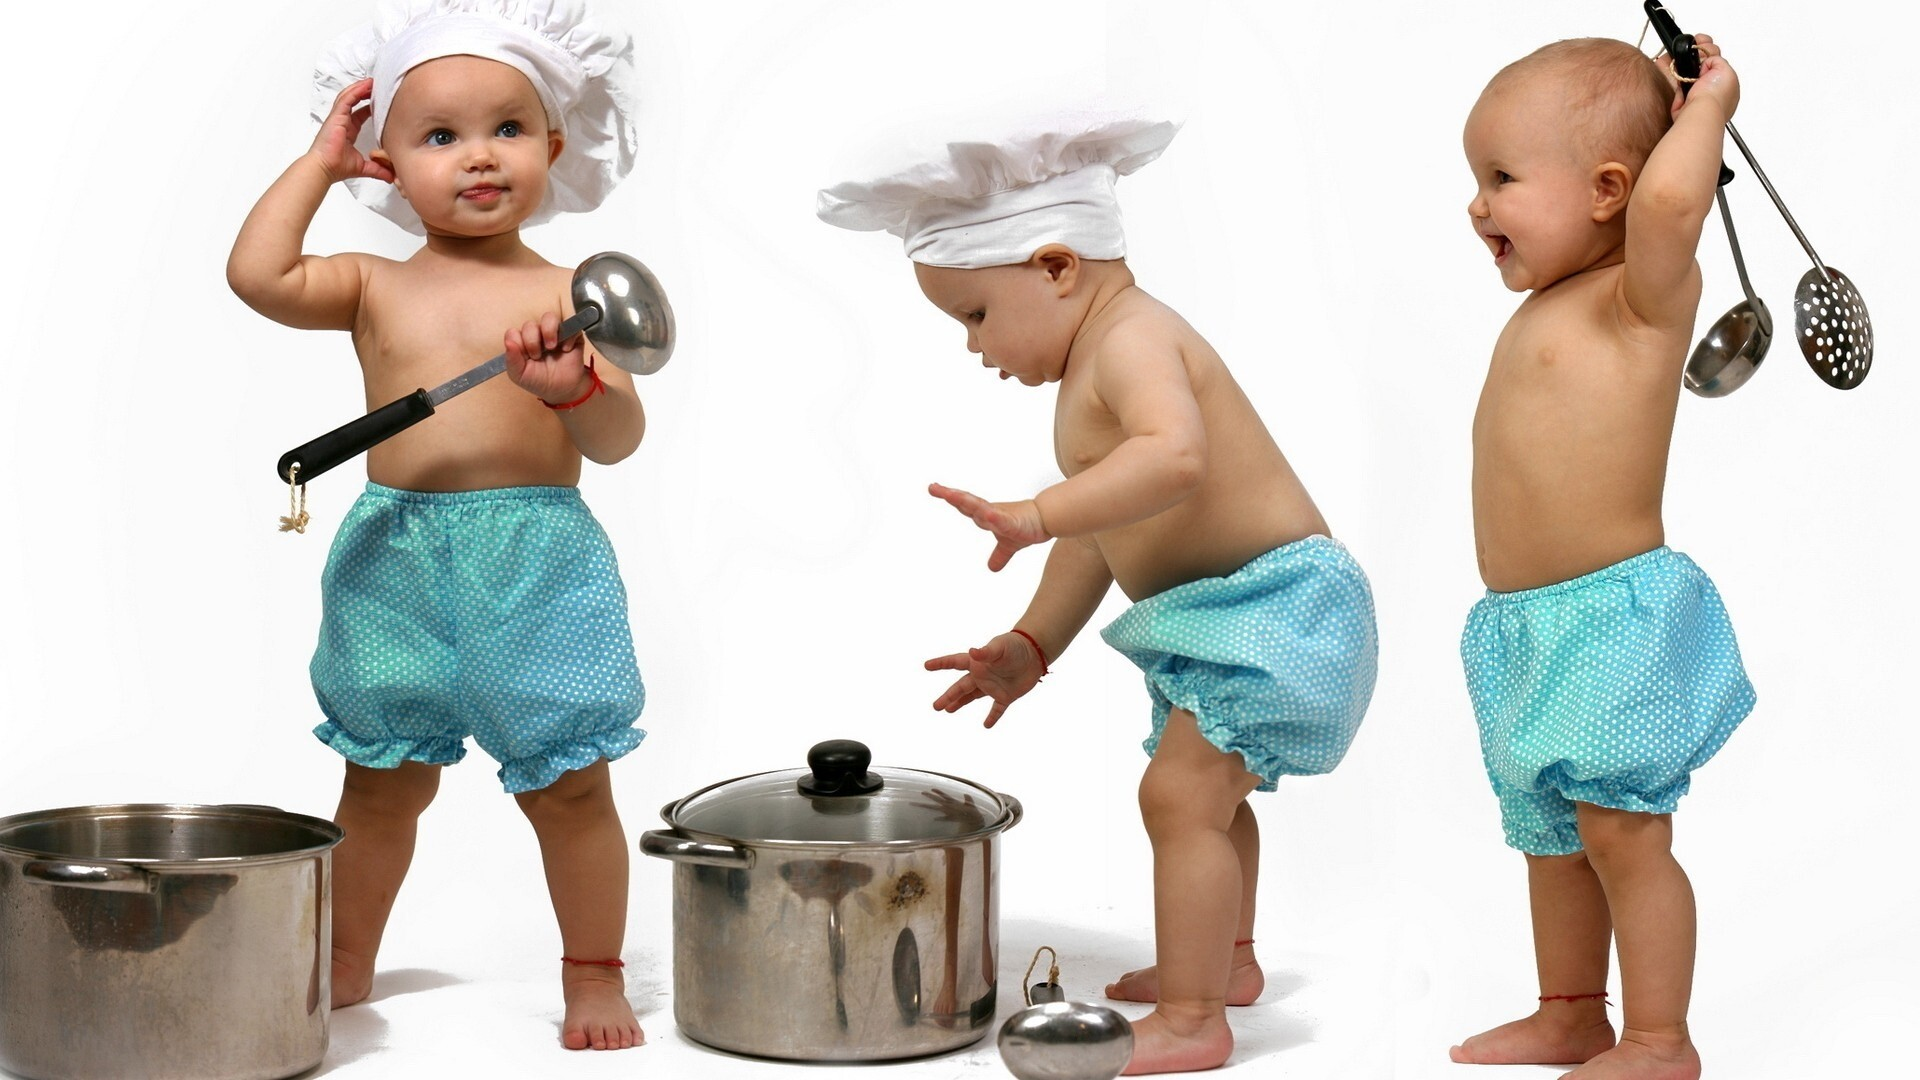 Cute Funny Baby Boys in Cooking Dress Wallpaper | HD Wallpapers on fun kitchen art, fun kitchen accessories, fun kitchen rugs, fun kitchen tables, fun kitchen toys, fun kitchen themes, fun kitchen design, fun kitchen tools, fun kitchen windows, fun kitchen walls, fun kitchen curtains, fun kitchen pillow, fun kitchen appliances, fun kitchen clocks, fun kitchen signs, fun kitchen lights, fun kitchen backsplash, fun kitchen fabric, fun kitchen paint, fun kitchen cabinets,